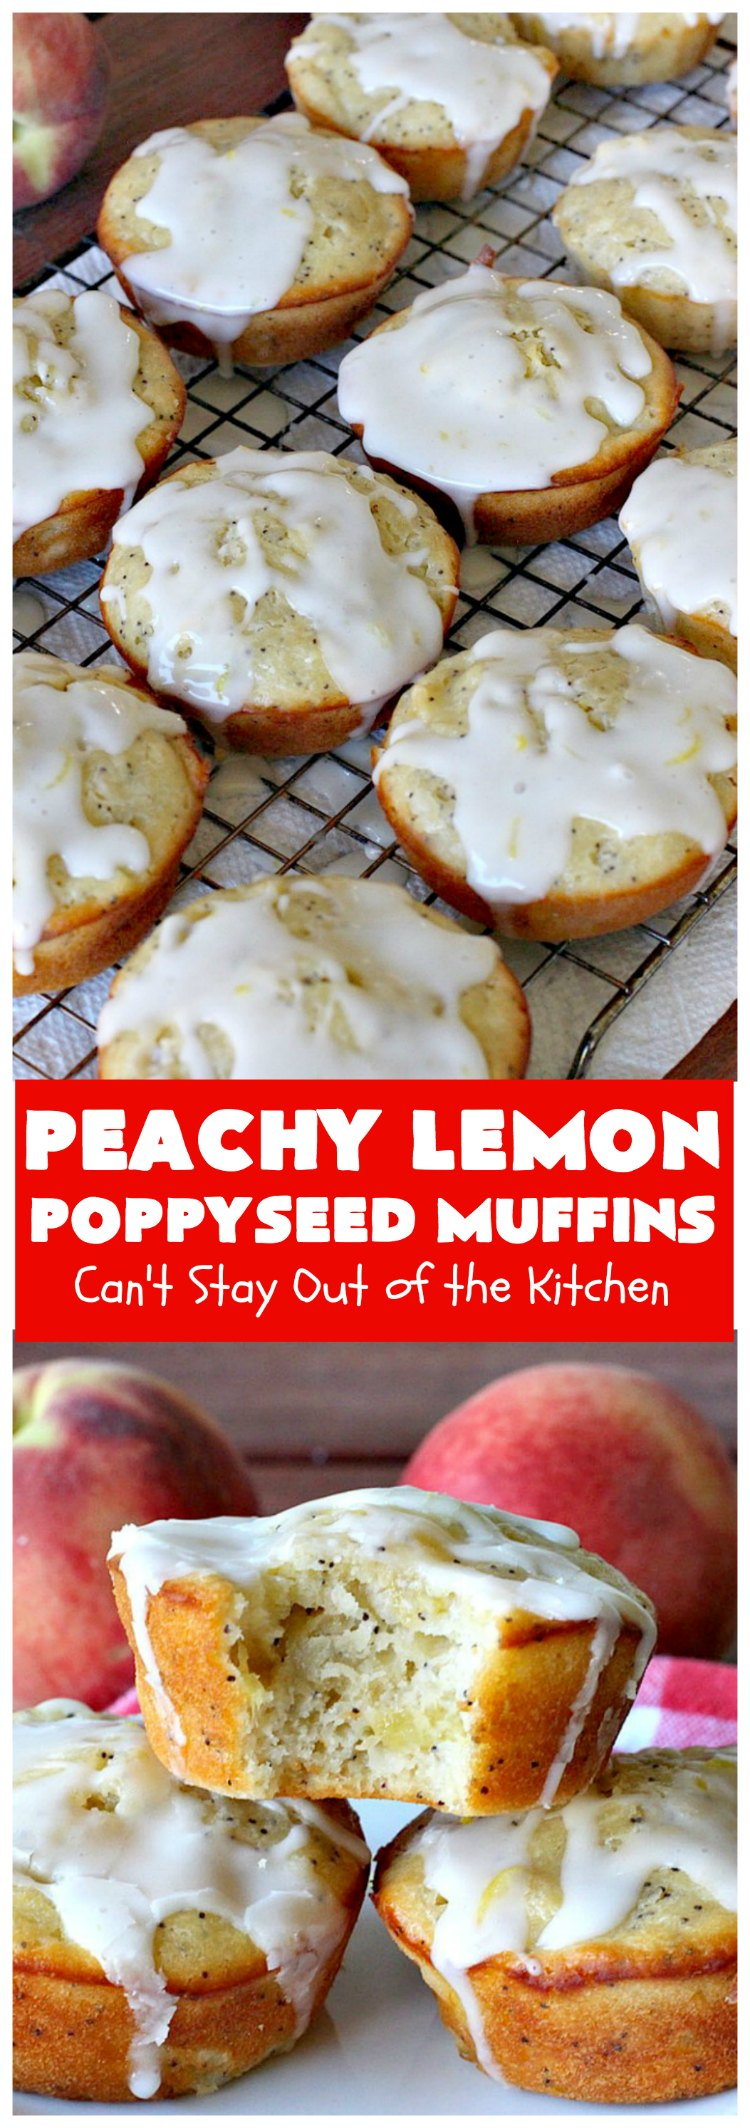 Peachy Lemon Poppyseed Muffins   Can't Stay Out of the Kitchen